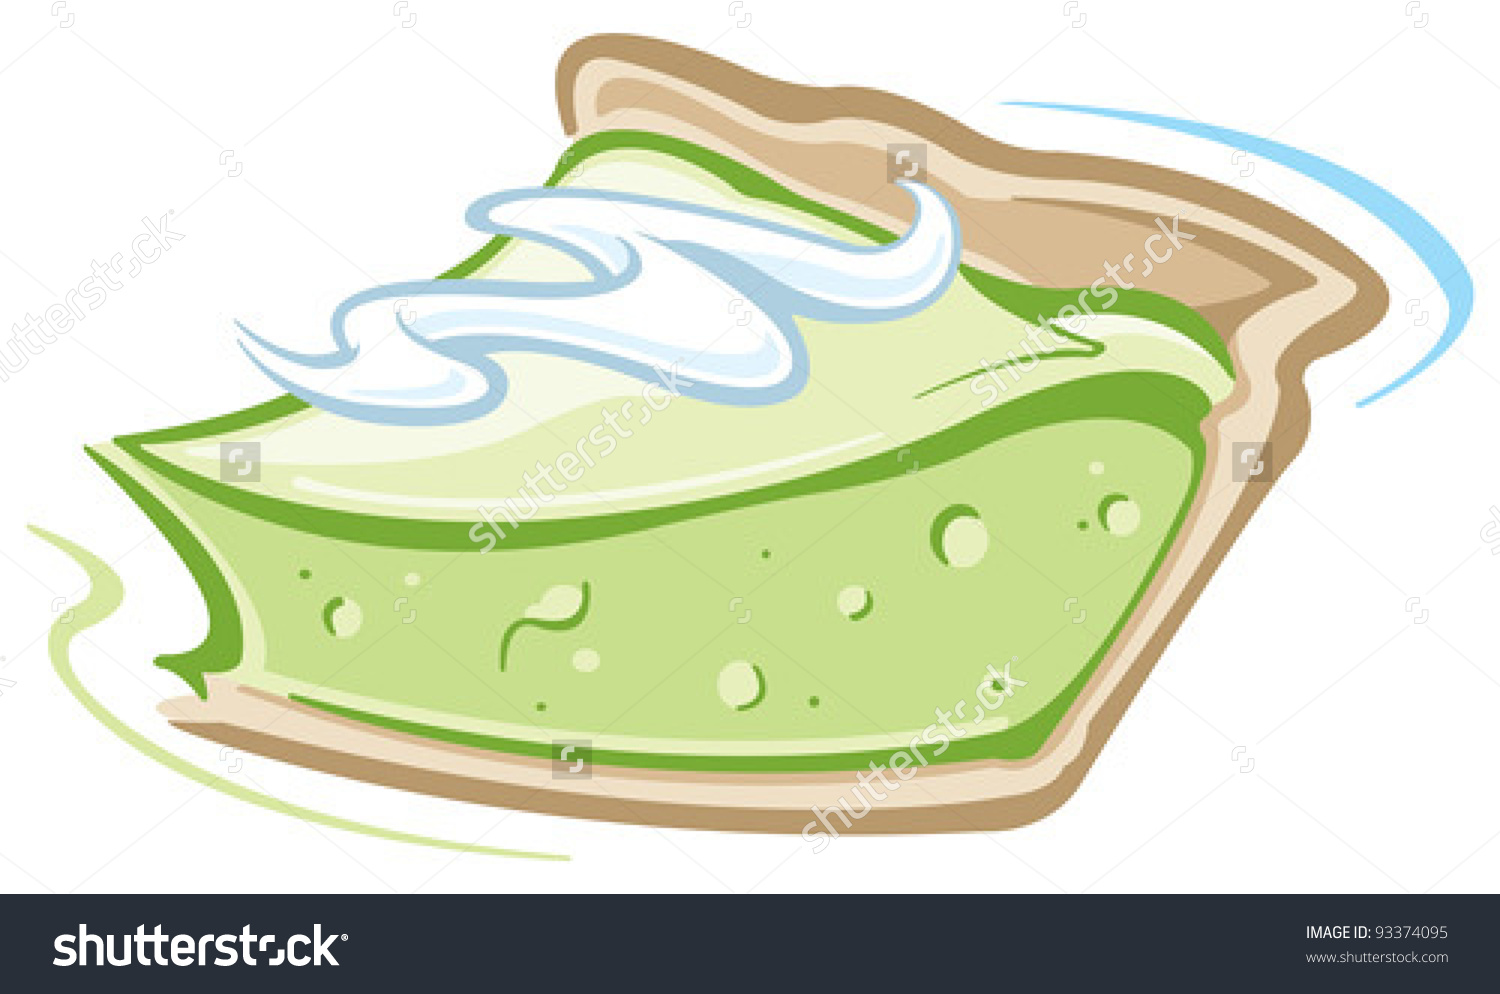 Key lime clipart #7